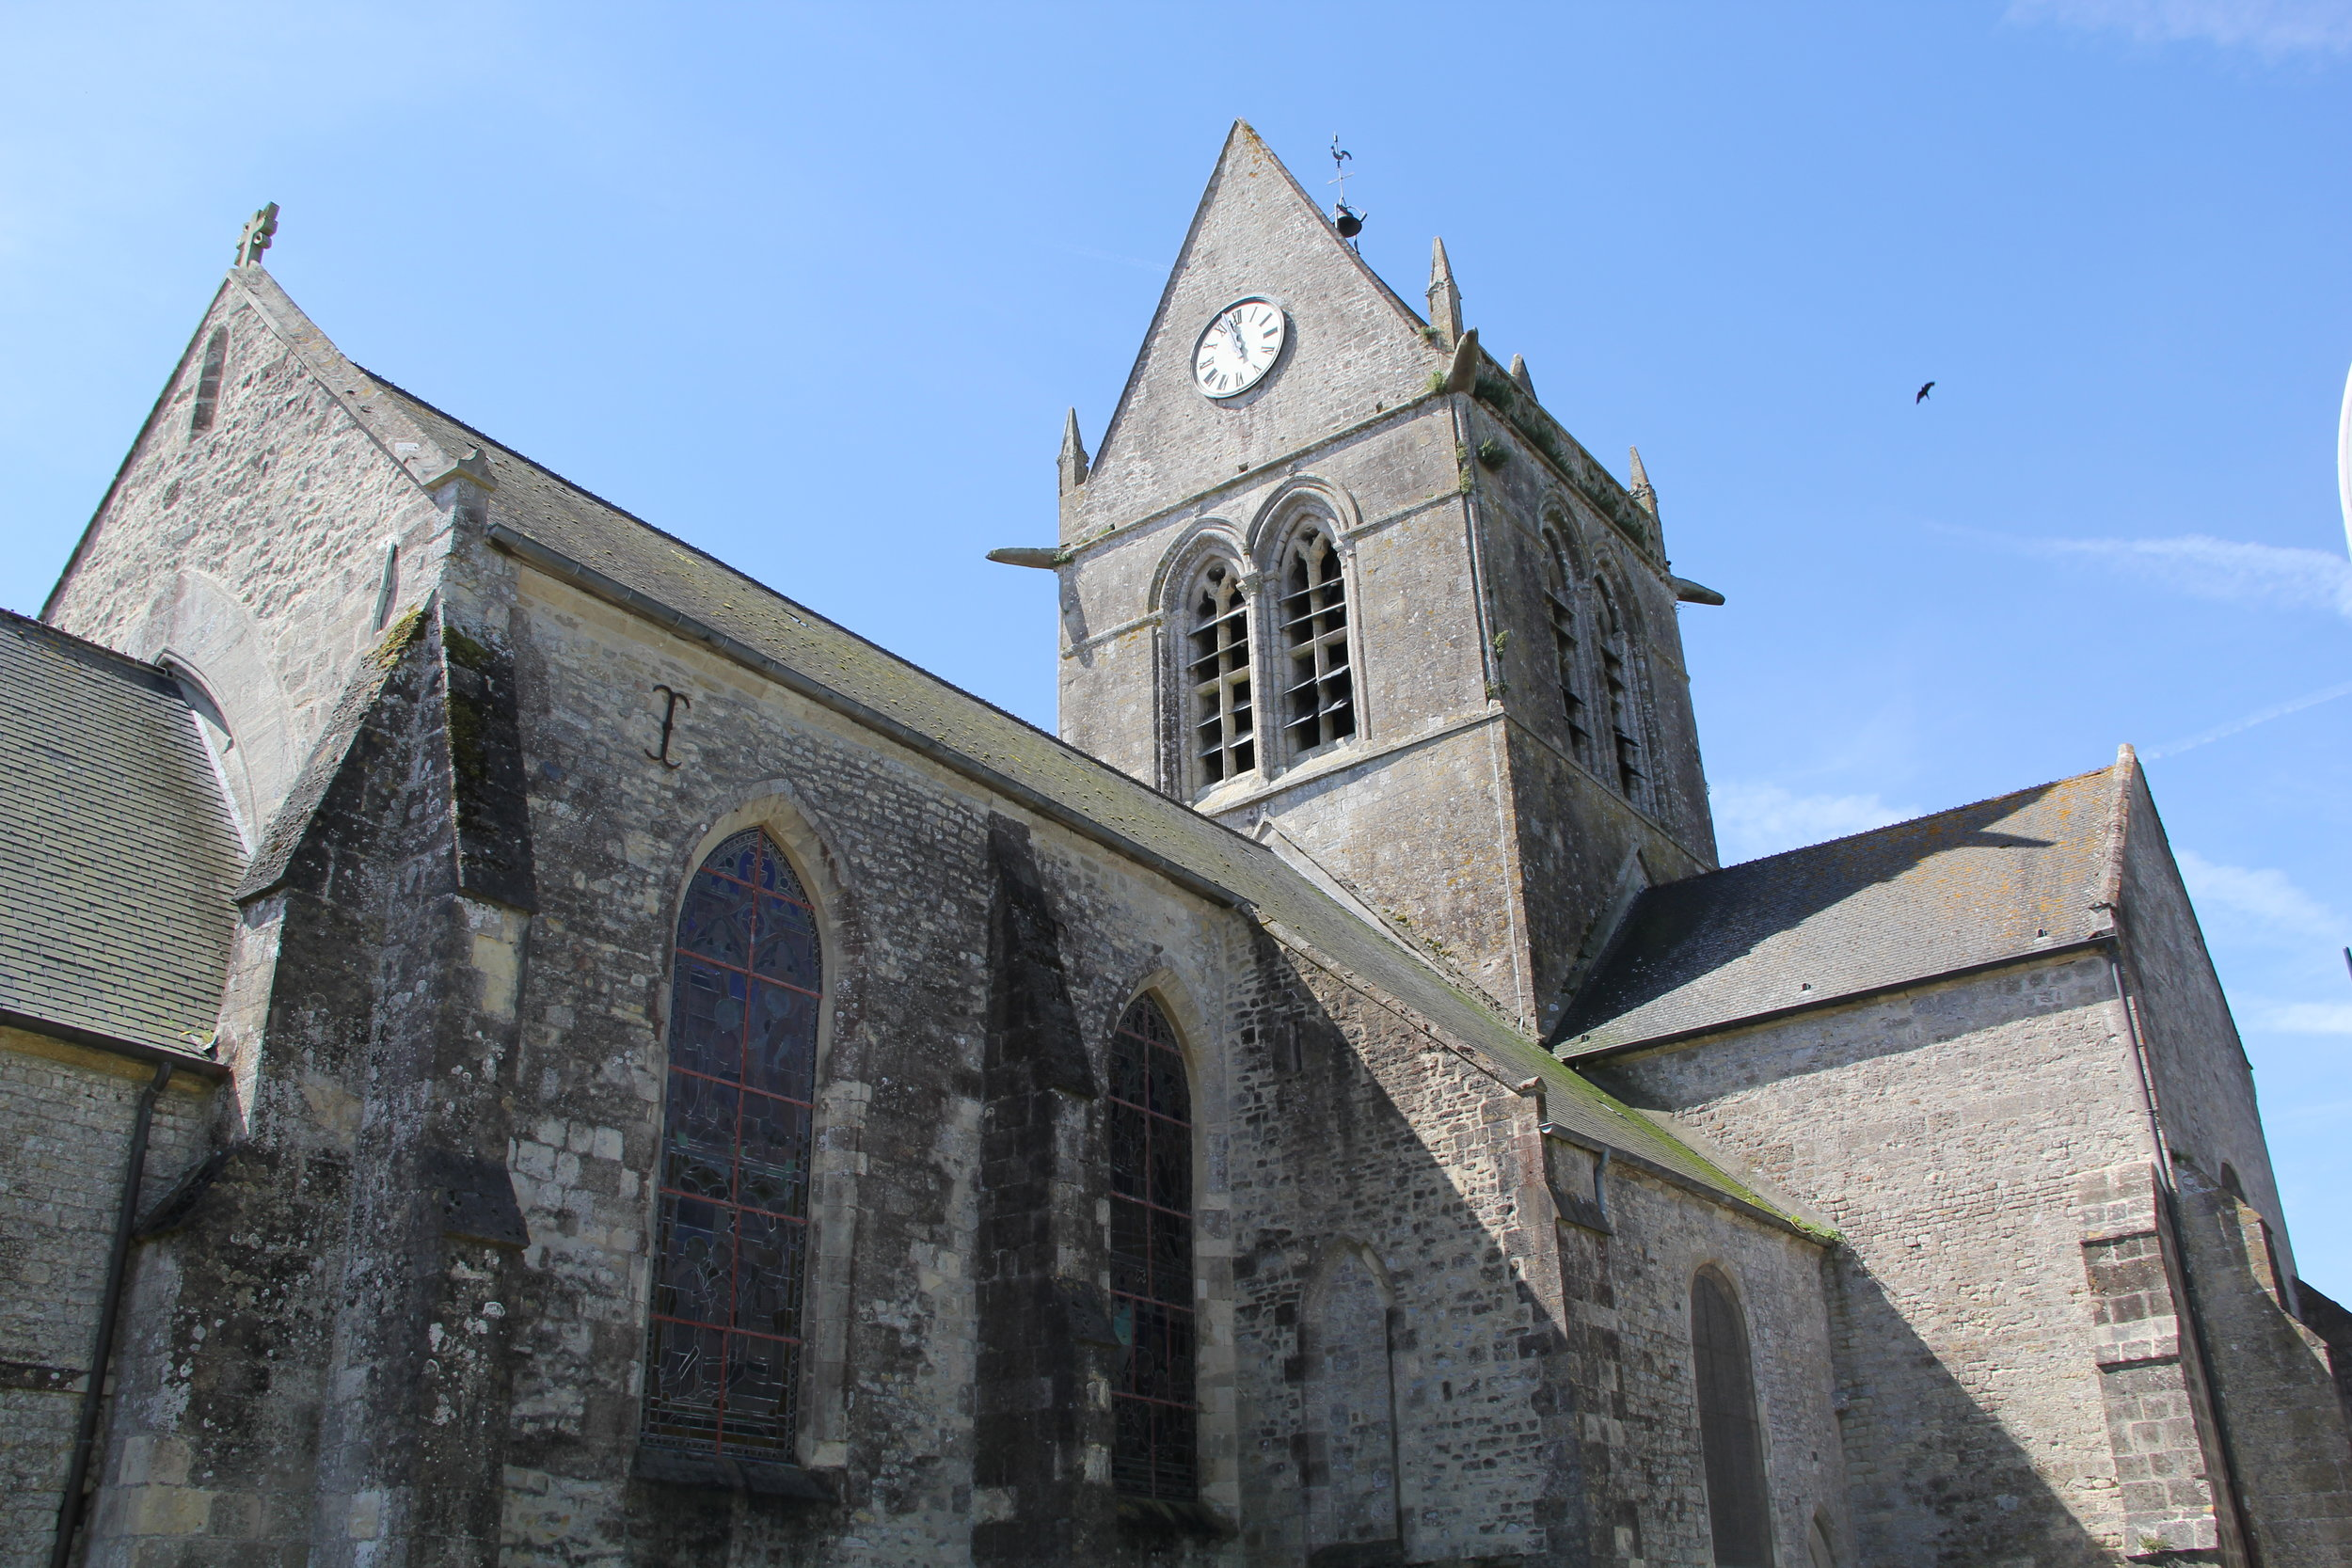 The Church of Ste Mere Eglise